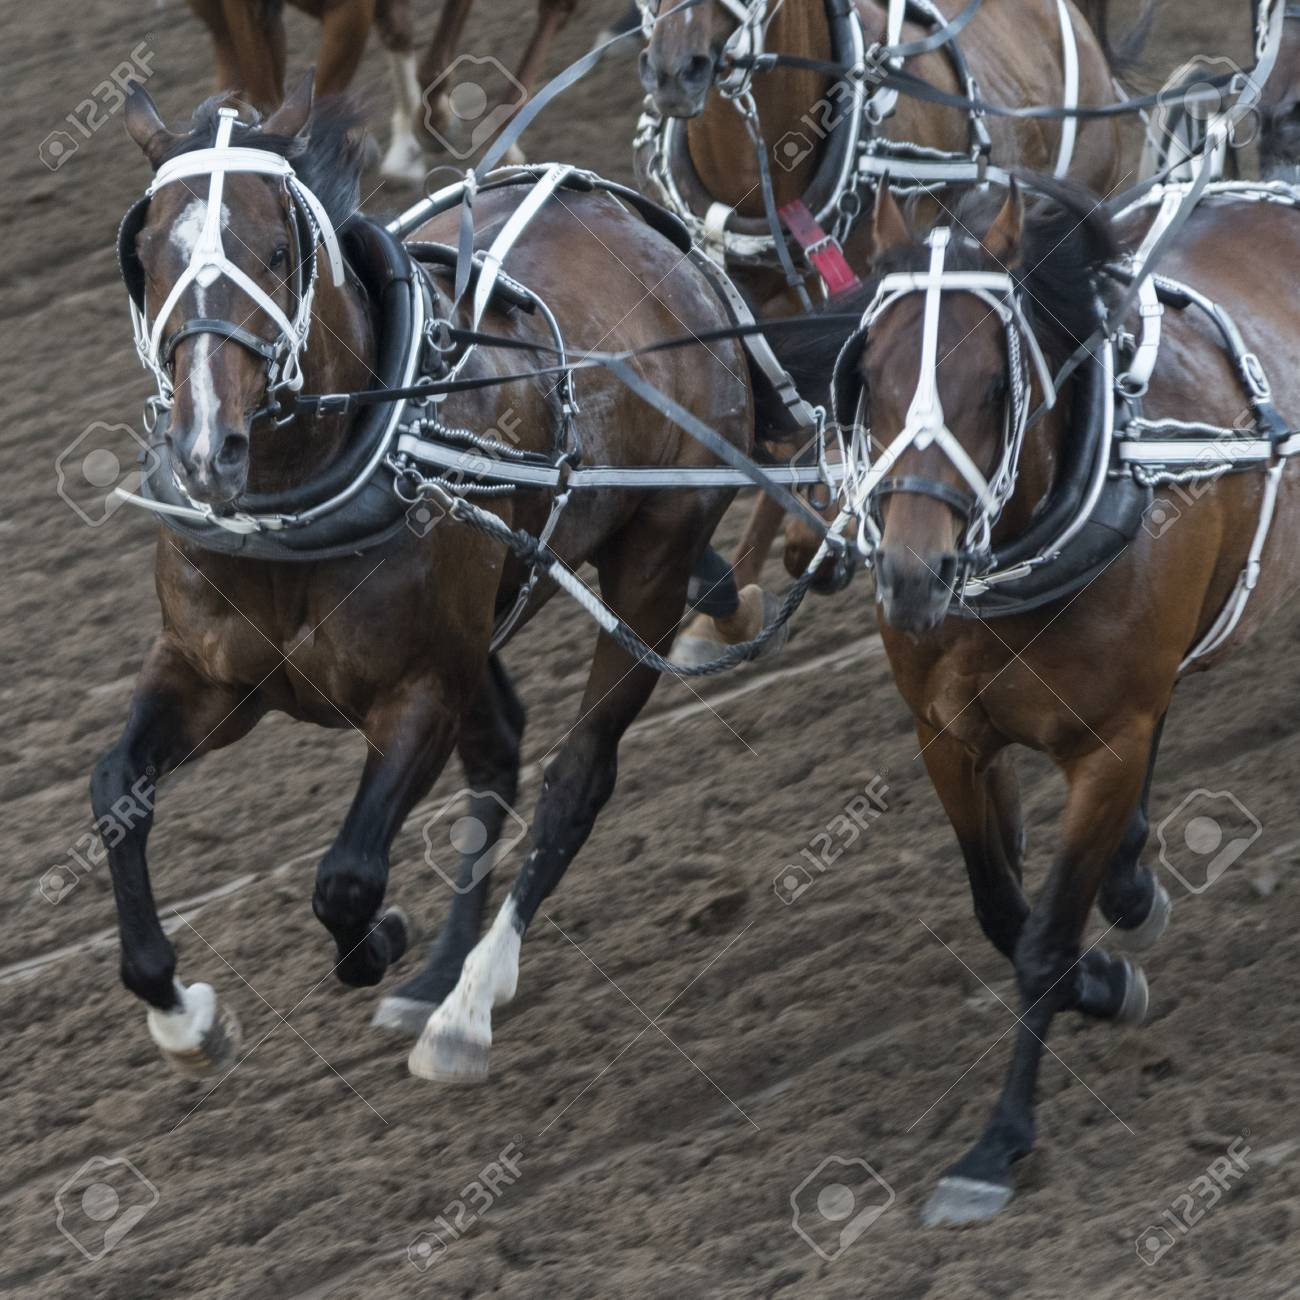 Horses chuckwagon racing at the annual Calgary Stampede, Calgary,